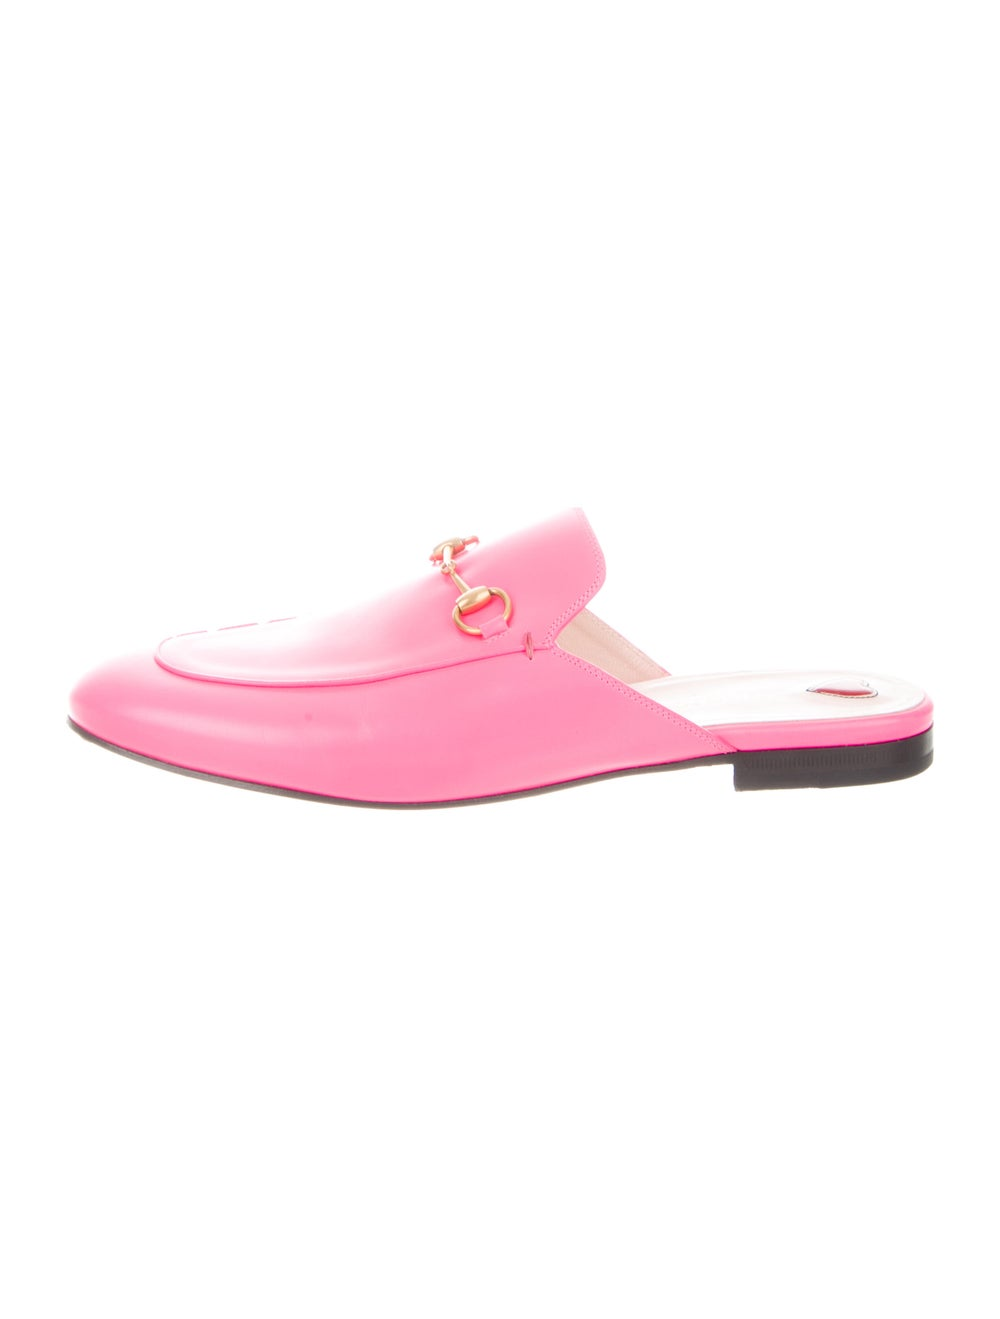 Gucci Princetown Horsebit Accent Mules Pink - image 1